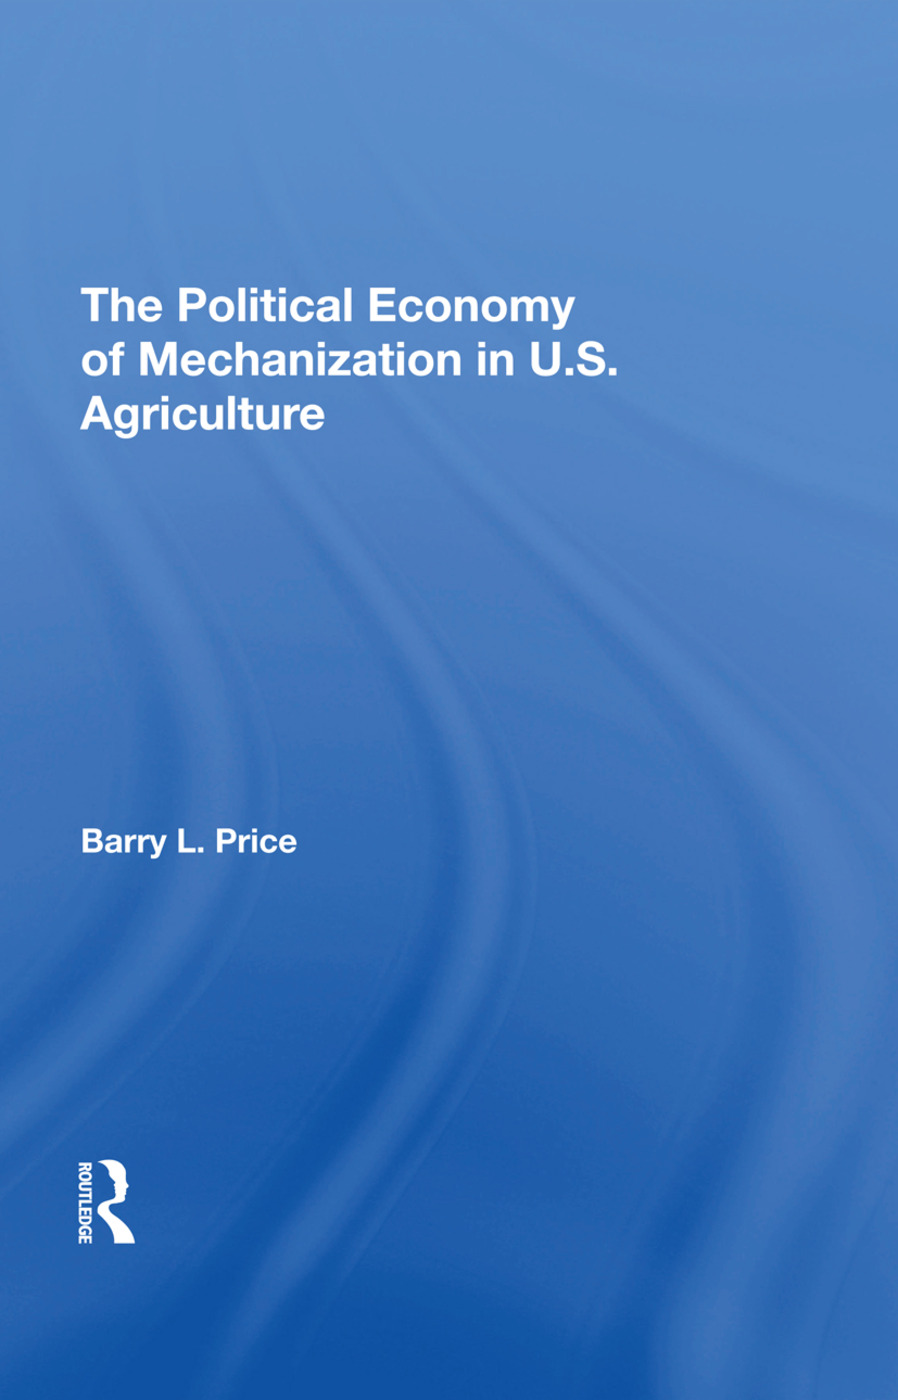 The Political Economy of Mechanization in U.S. Agriculture